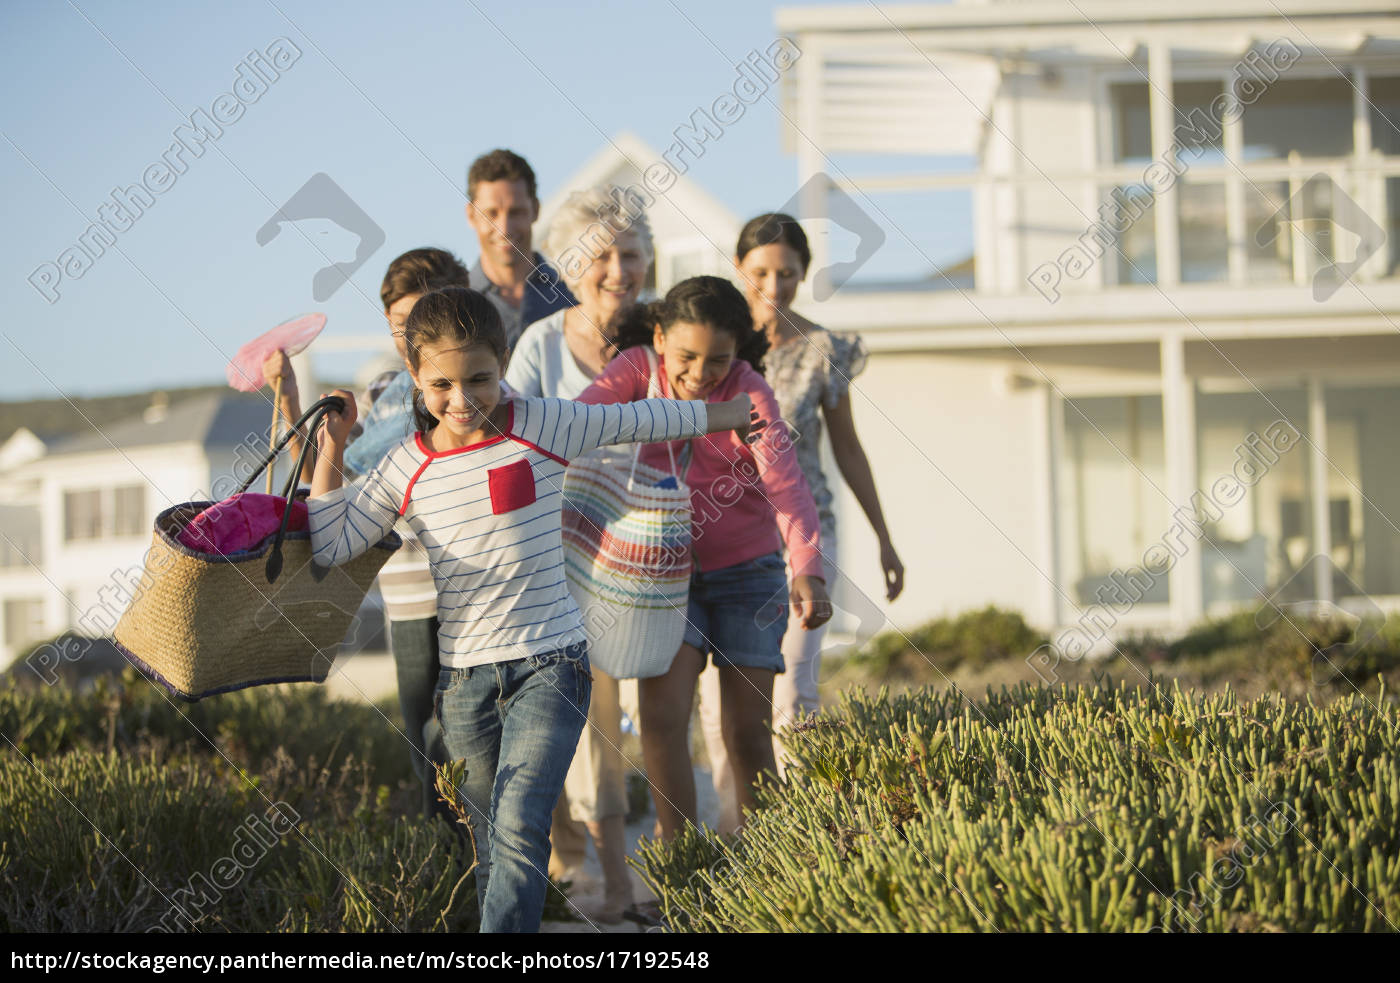 family, walking, on, beach, path, outside - 17192548